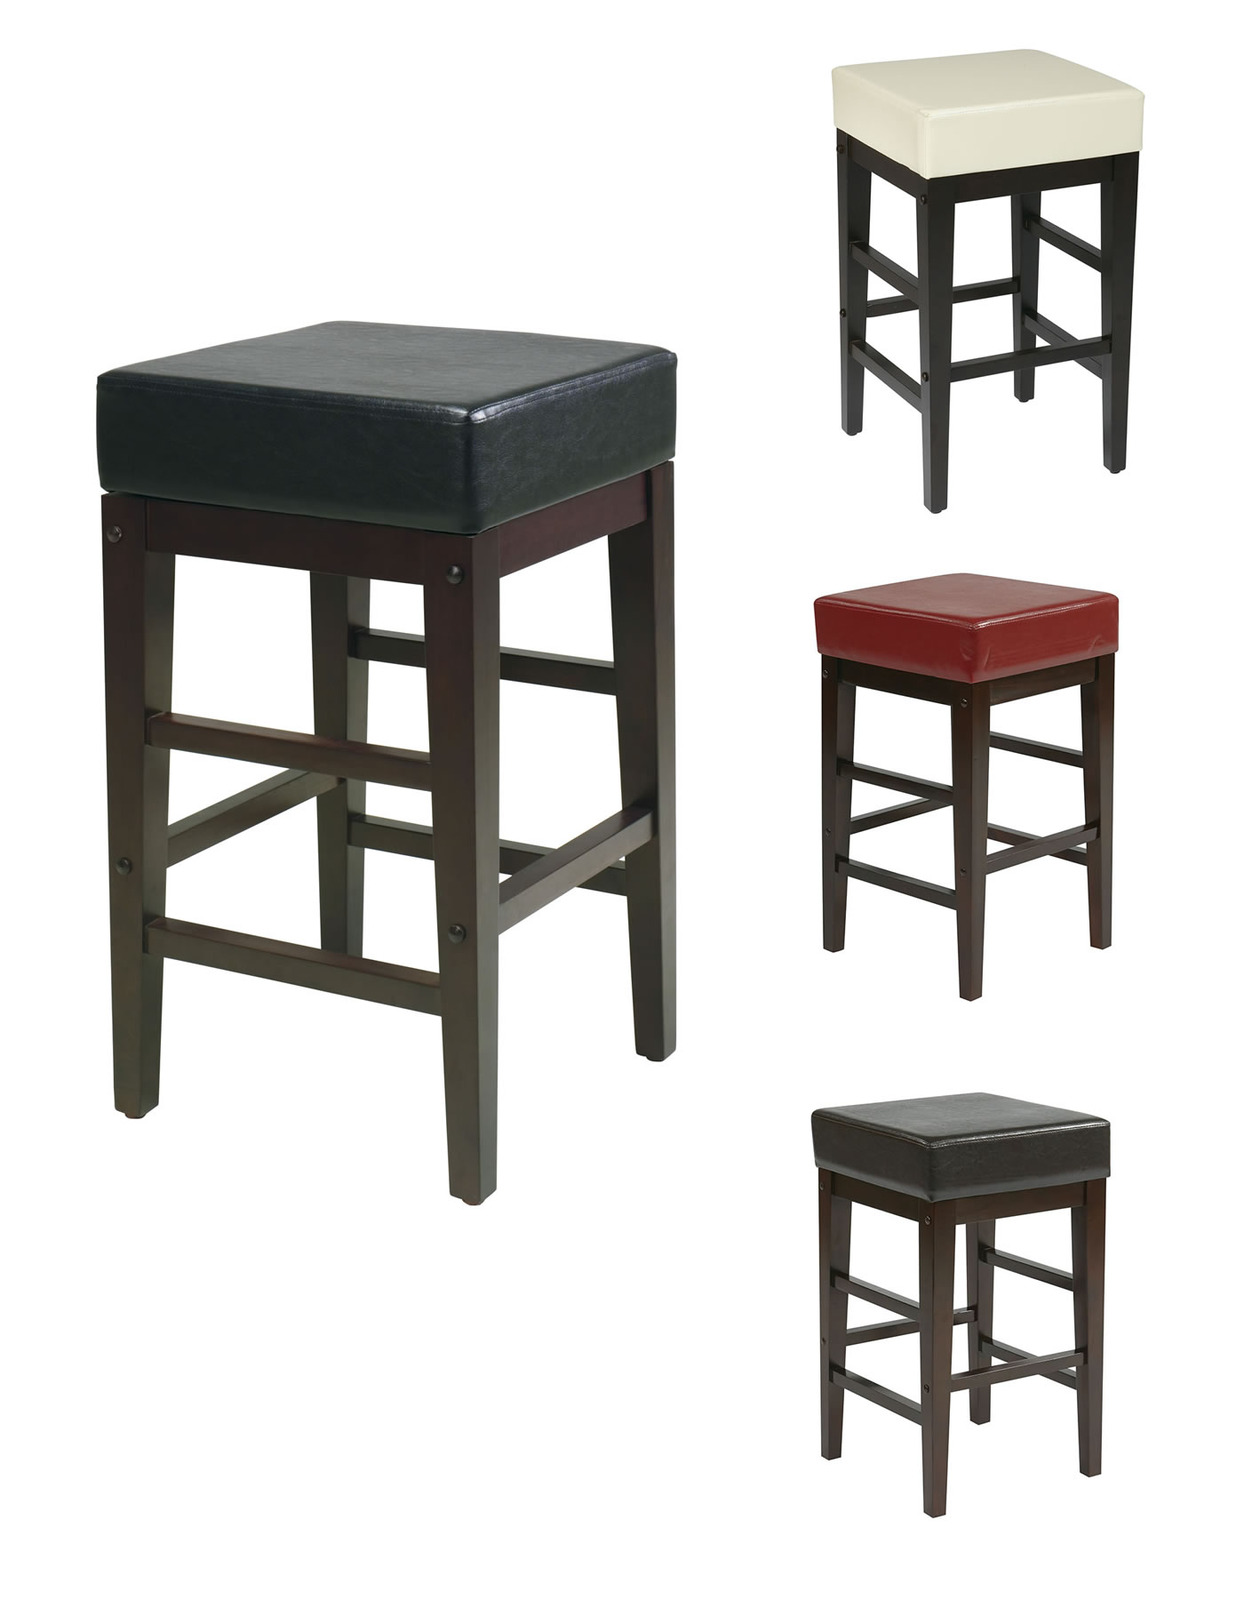 Superb img of 25H Seat Faux Leather Seat Wood Legs Bar Breakfast Counter Stool Chair  with #6B3630 color and 1244x1600 pixels